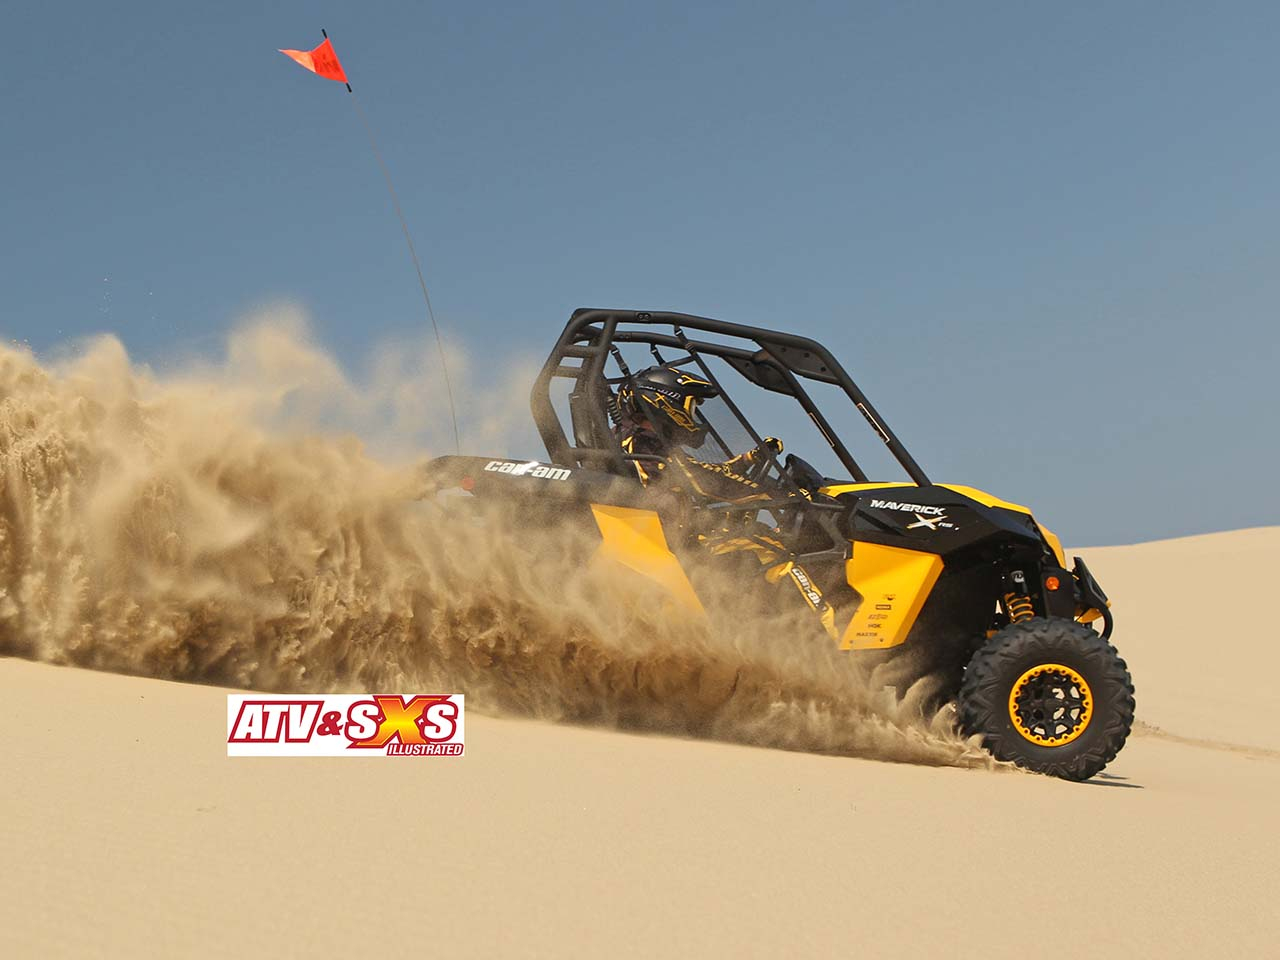 First Look - The 2013 Can-Am Maverick 1000R | ATV Illustrated